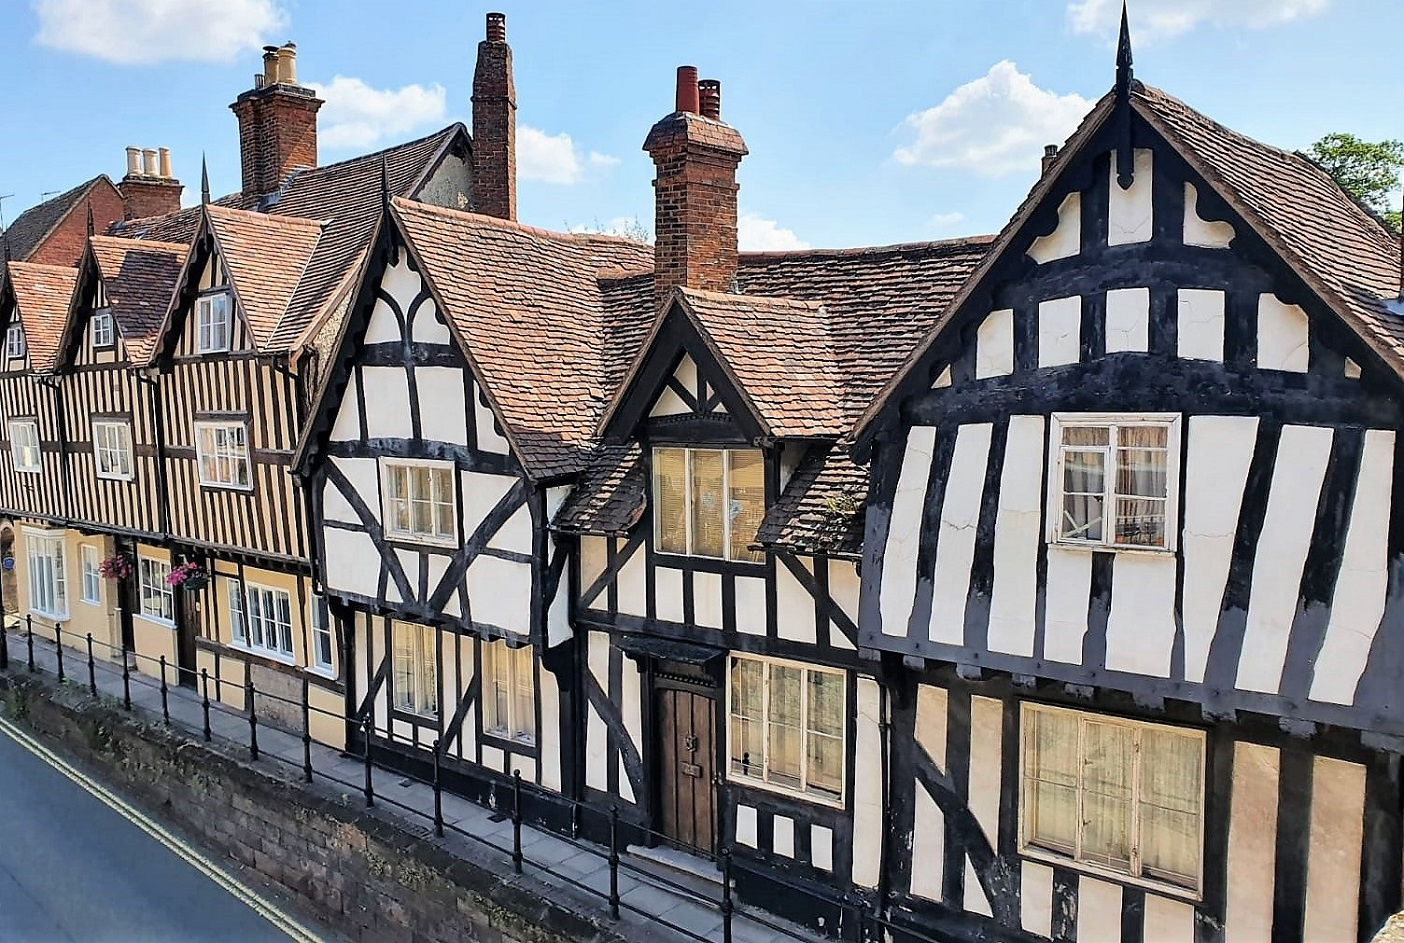 Timber fronted houses in Warwick